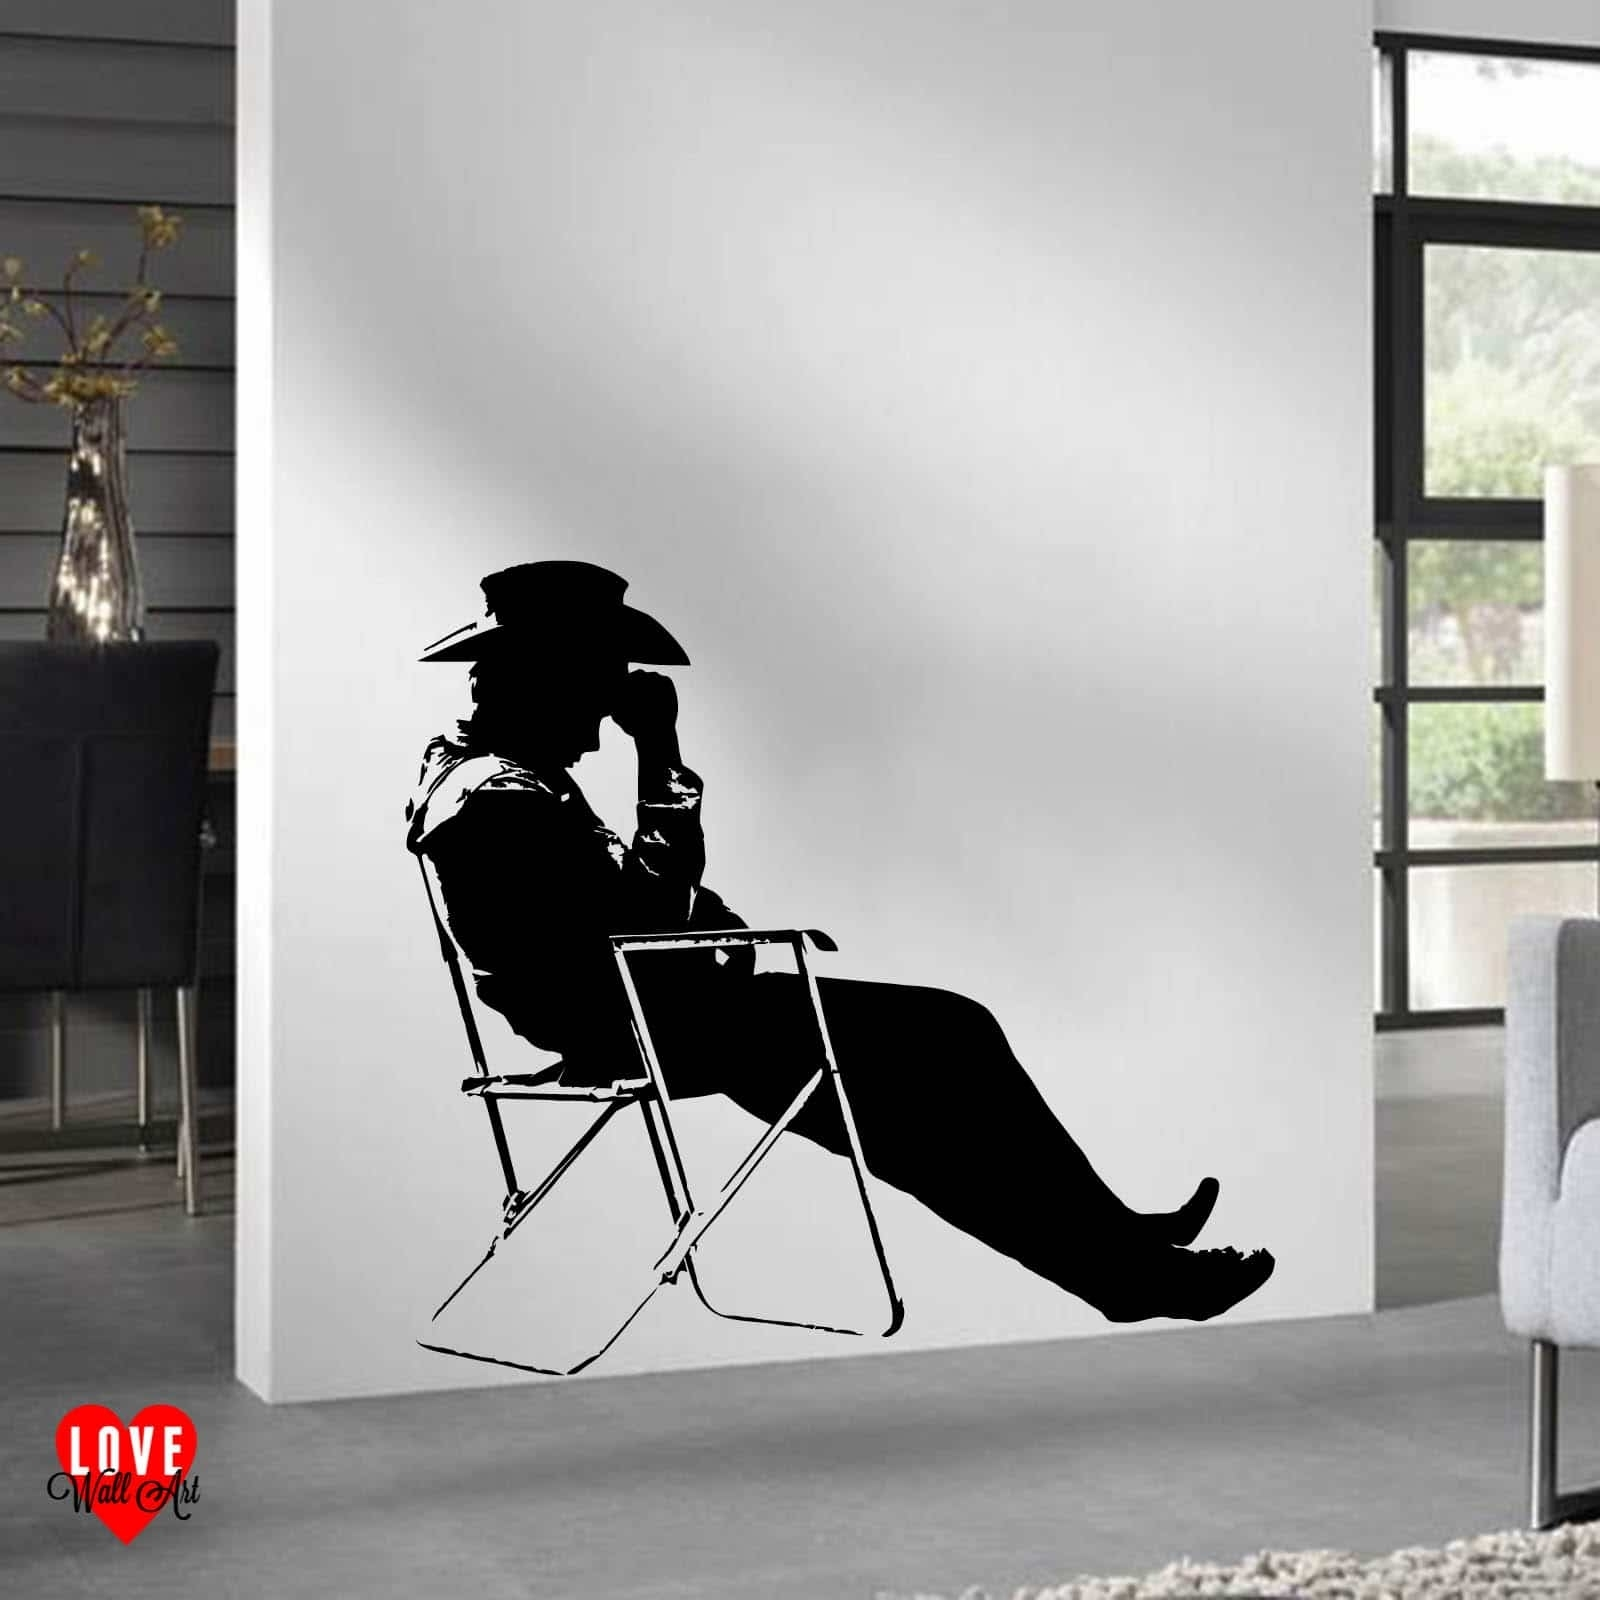 James Dean On The Movie Set Of Giant Large Wall Art Sticker Within Most Popular Giant Wall Art (View 9 of 20)